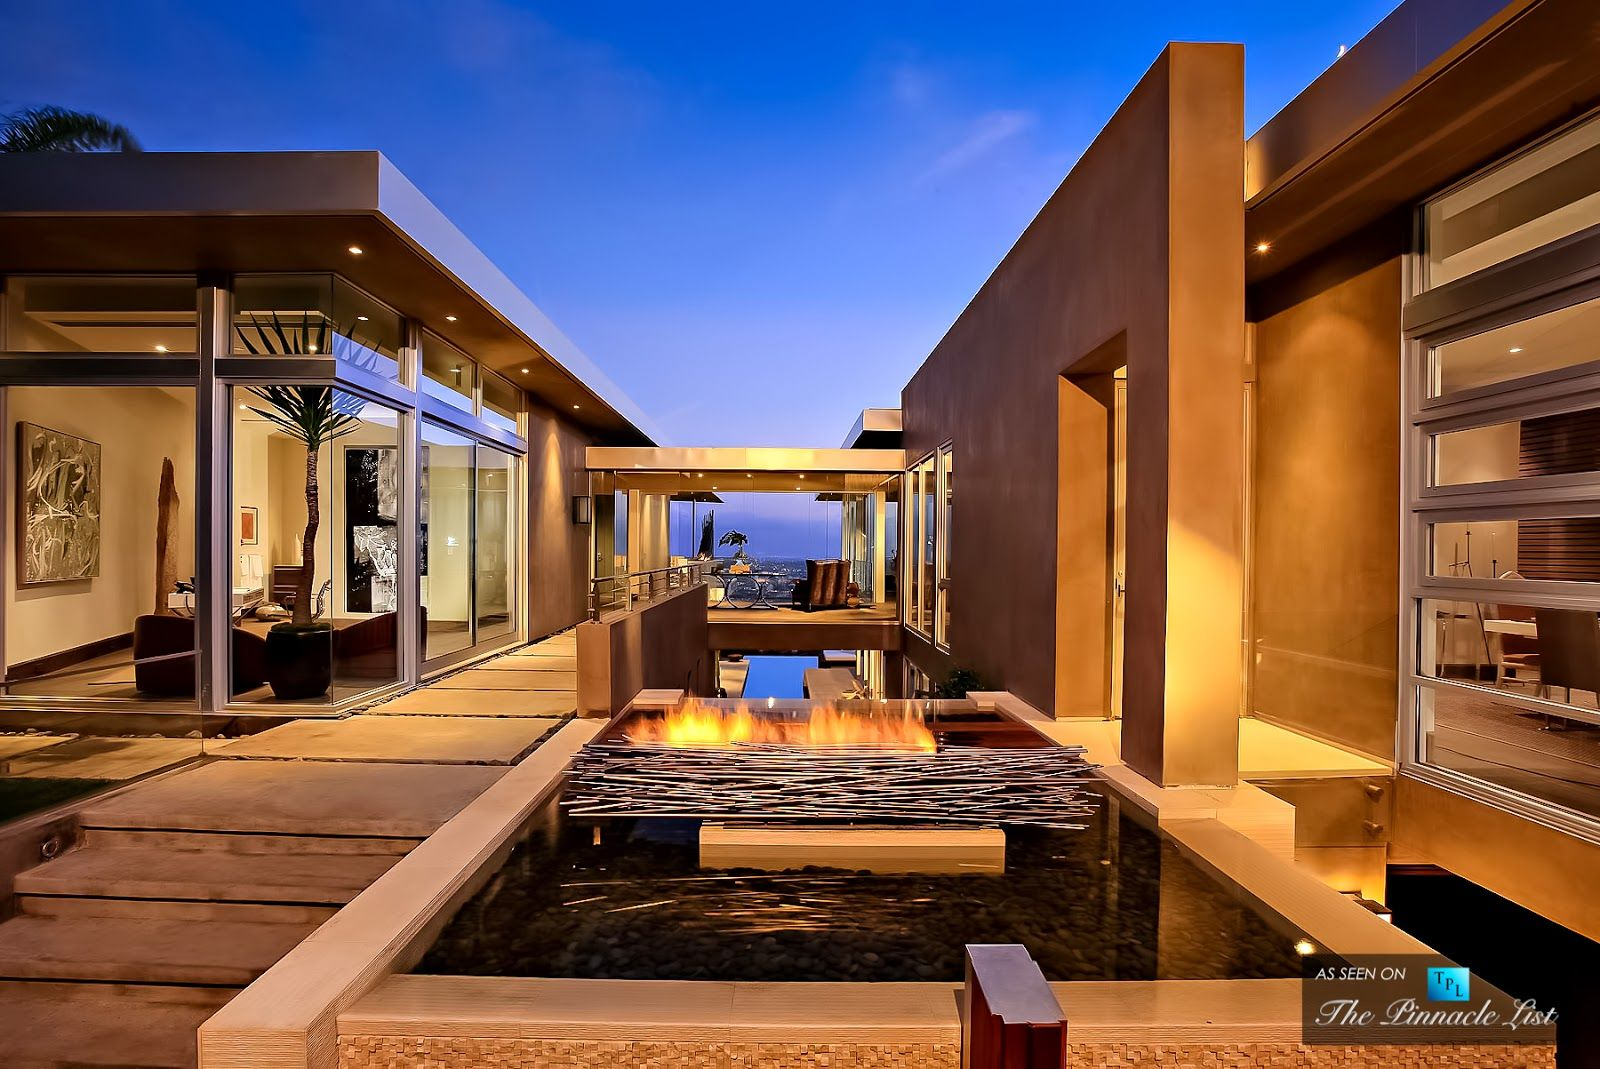 Inside Luxury Mansions Aviciiu0027s Luxurious Mansion For More Pictures Visit:  Http://a